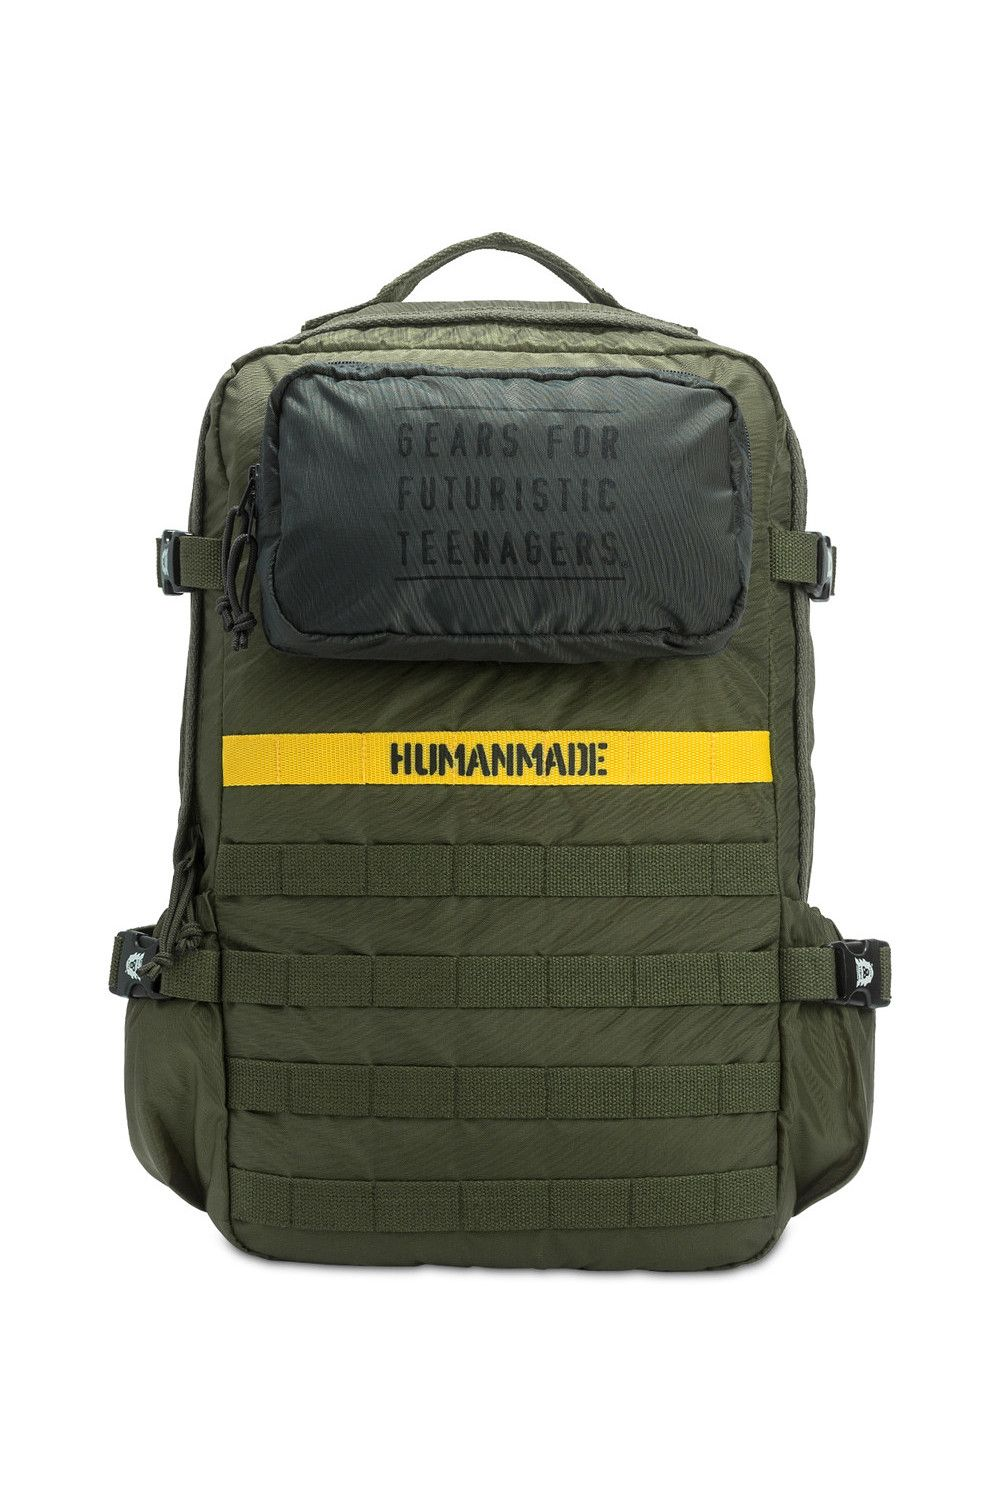 609a38c0d694e HUMAN MADE Puts Together a Set of Military-Inspired Carrying Options ...